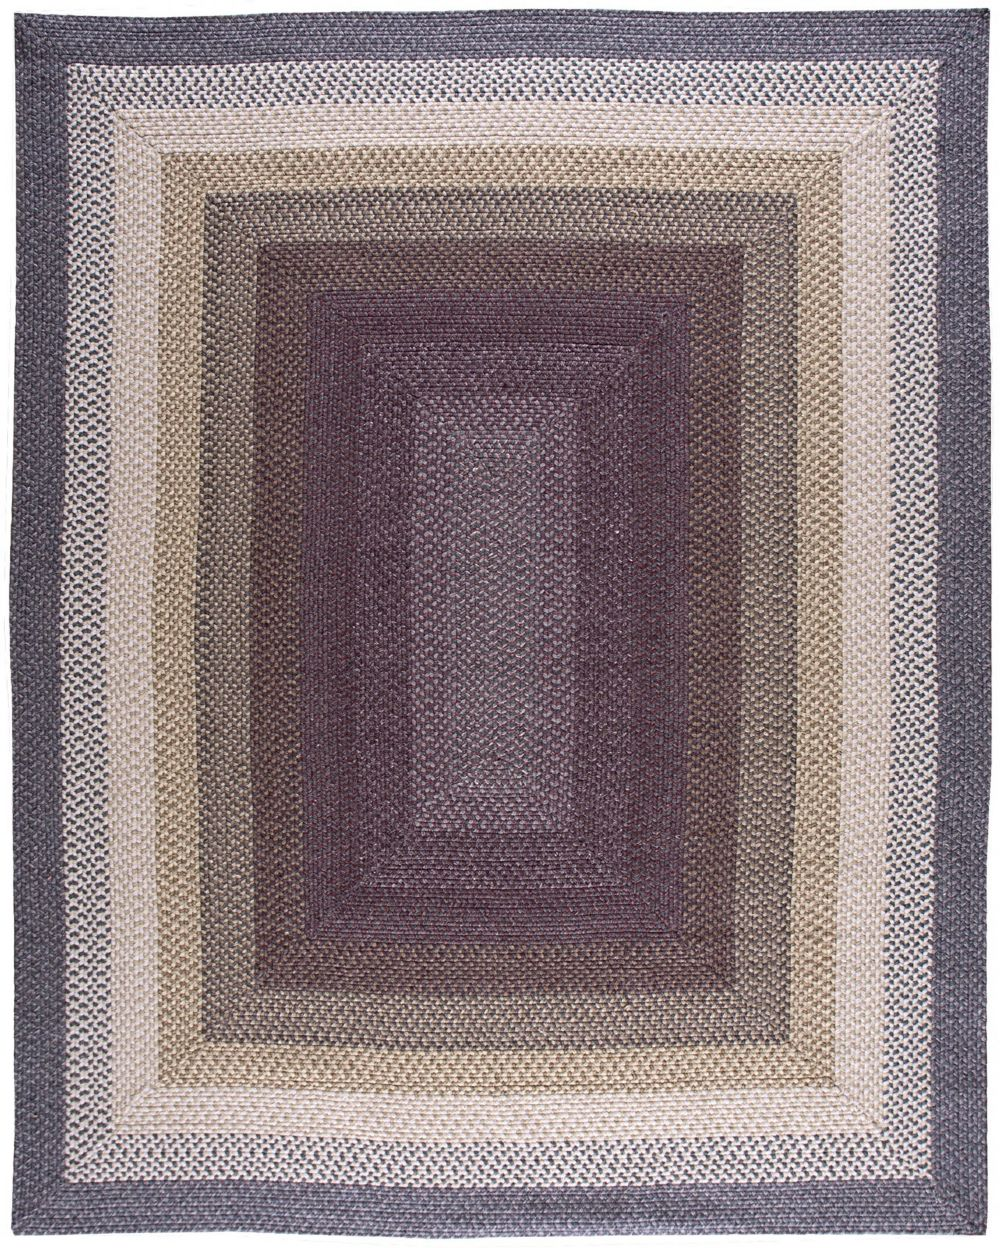 nourison craftwork braided area rug collection